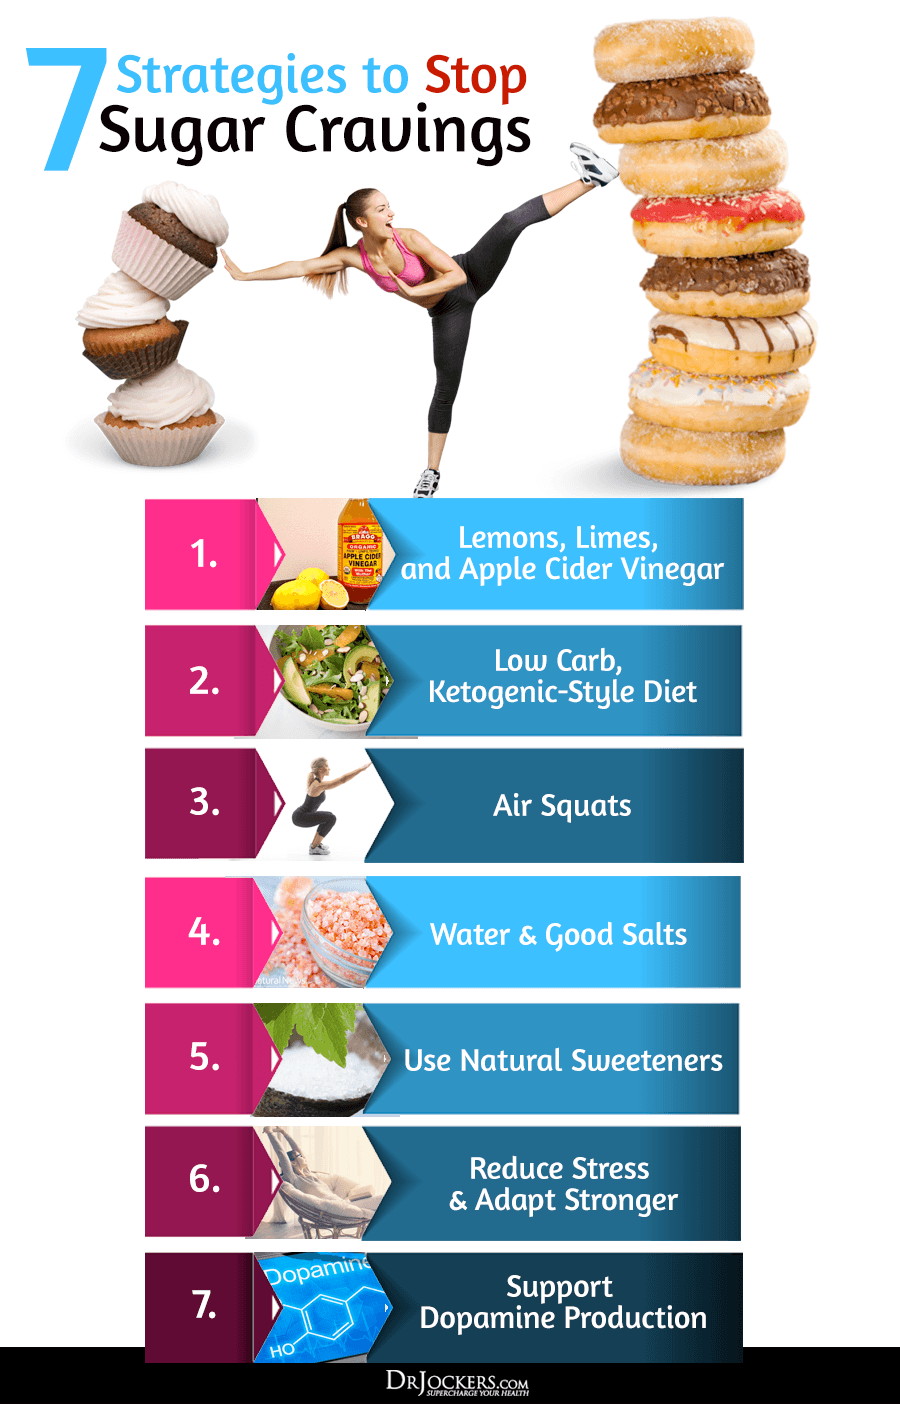 SUGARCRAVINGS_7Ways